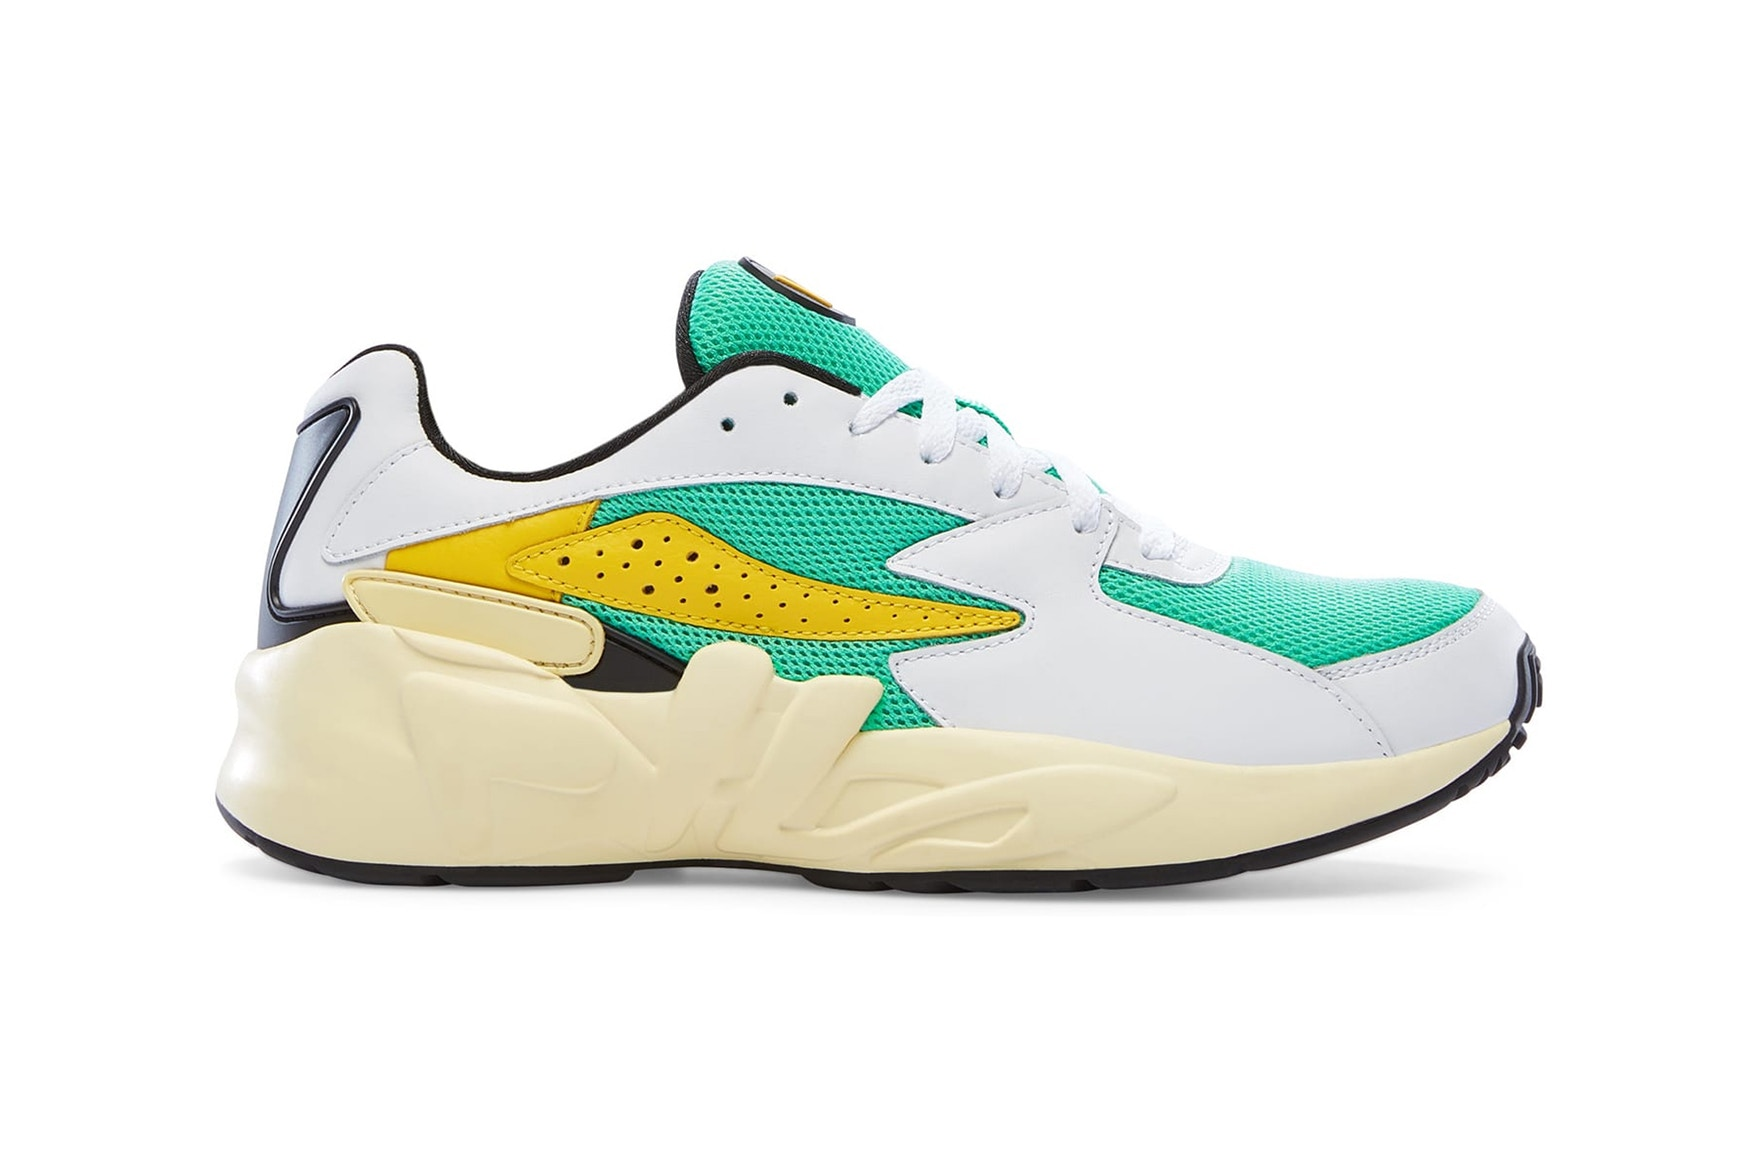 fila-revives-the-classic-mindblower-with-over-40-limited-edition-collaborations-47